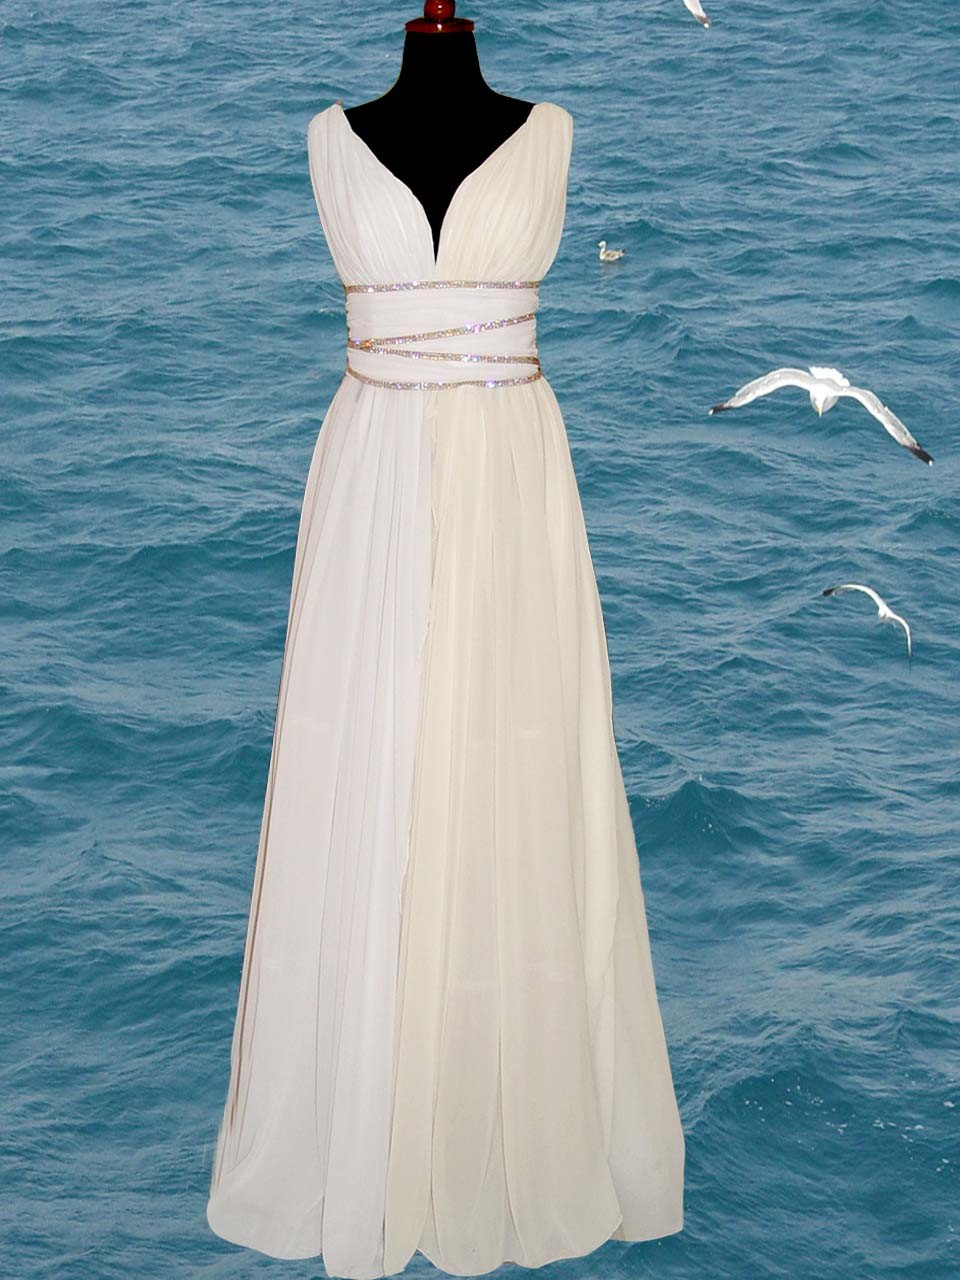 greek goddess wedding dress kyIavo greek goddess wedding dress Greek Goddess Wedding Dress Marnes